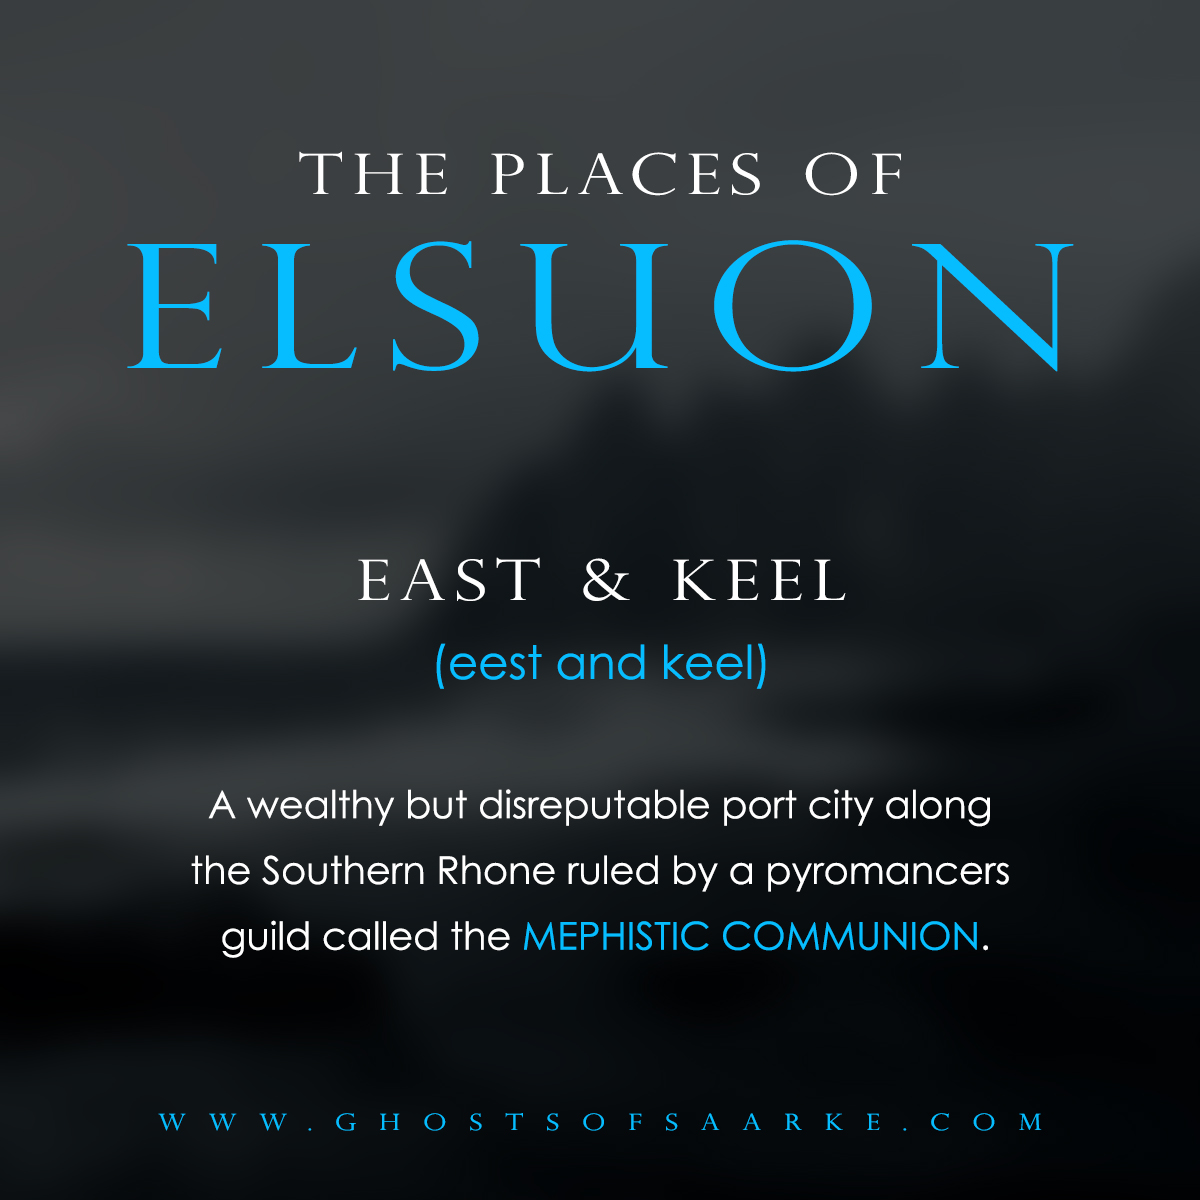 Places - East & Keel